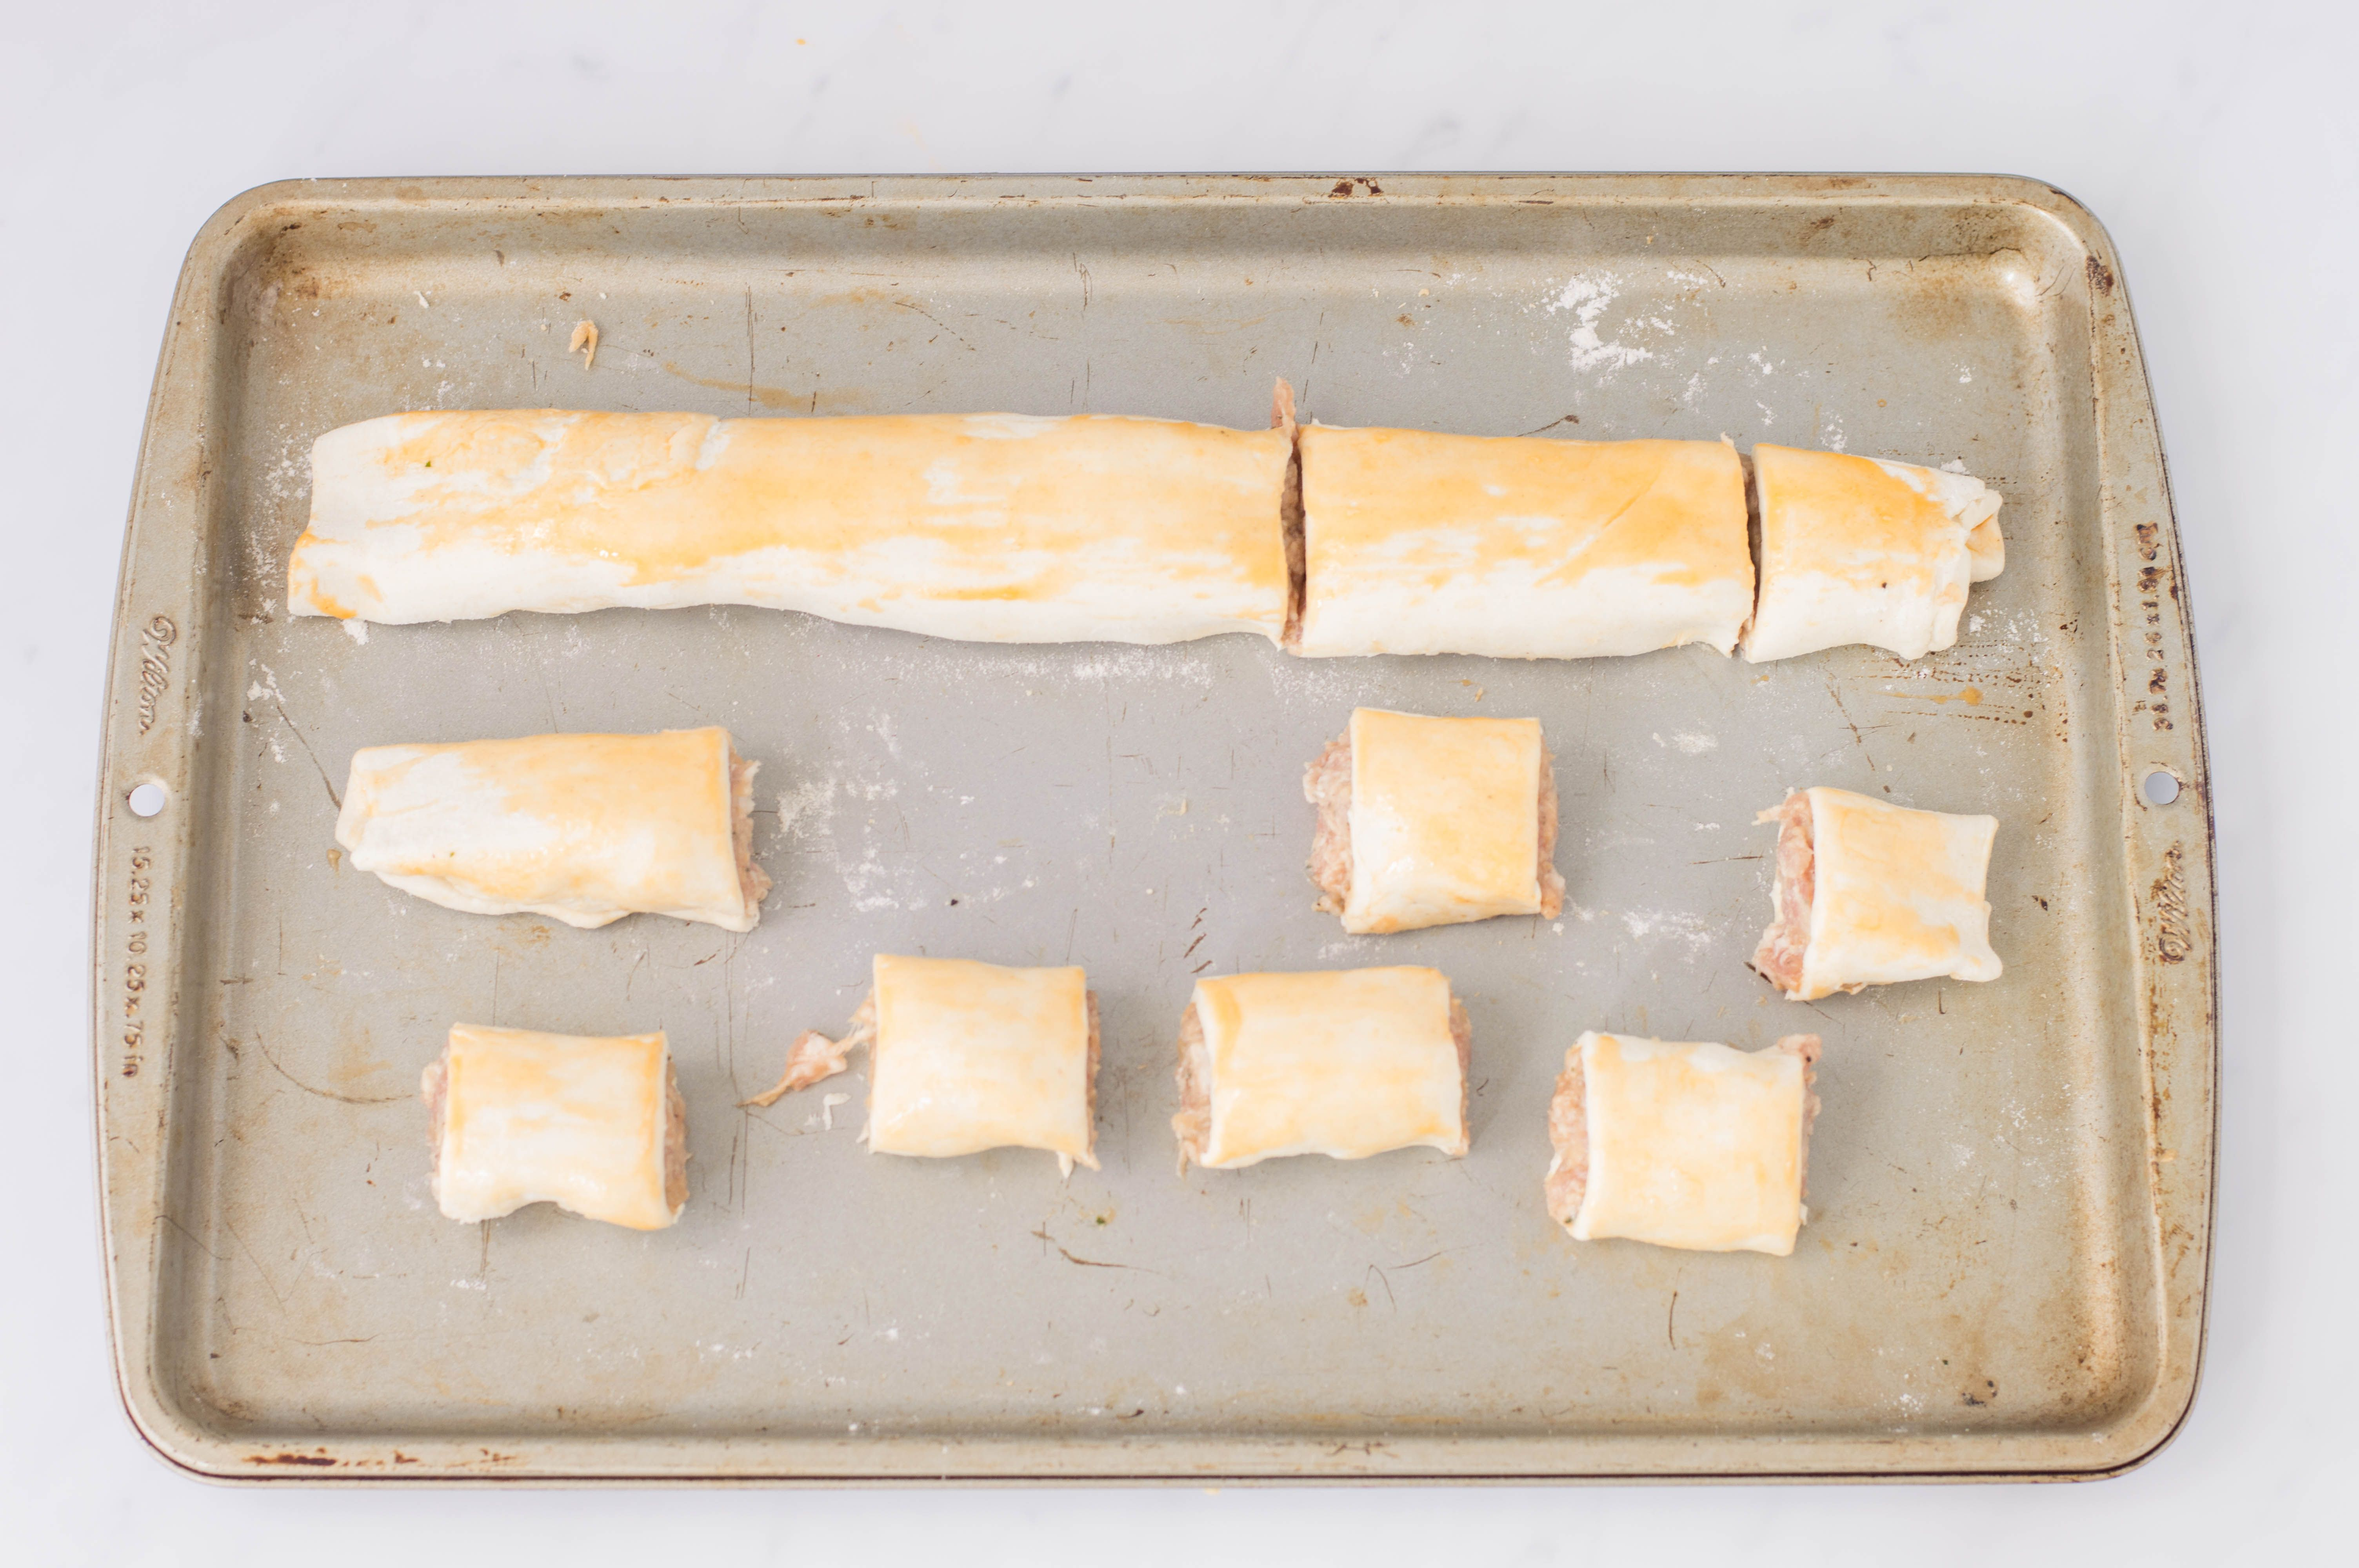 Cut pastry into sections